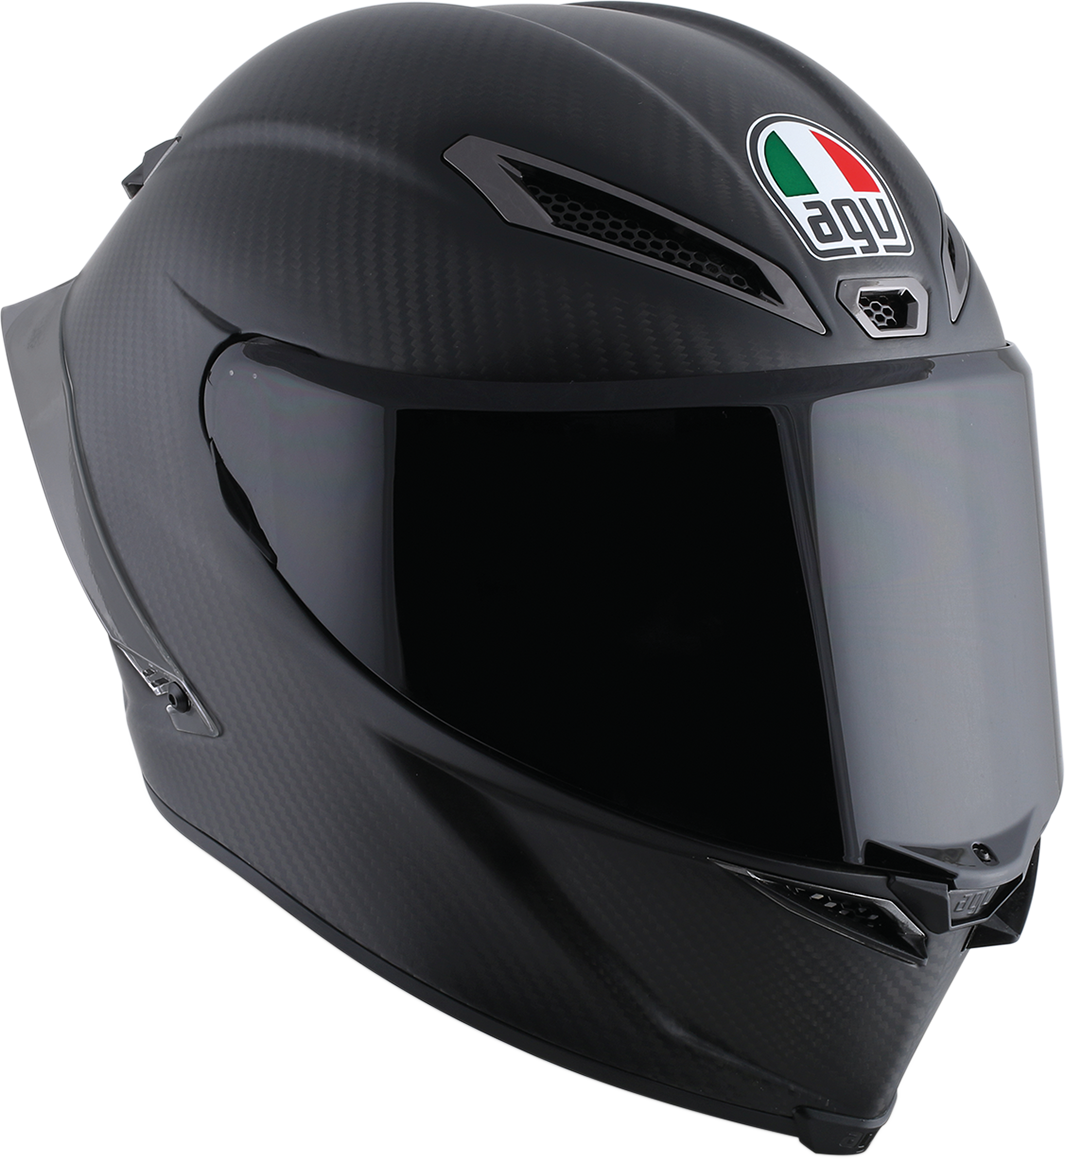 Agv Matte Black Pista GP R Full Face Motorcycle Riding Street Racing Helmet